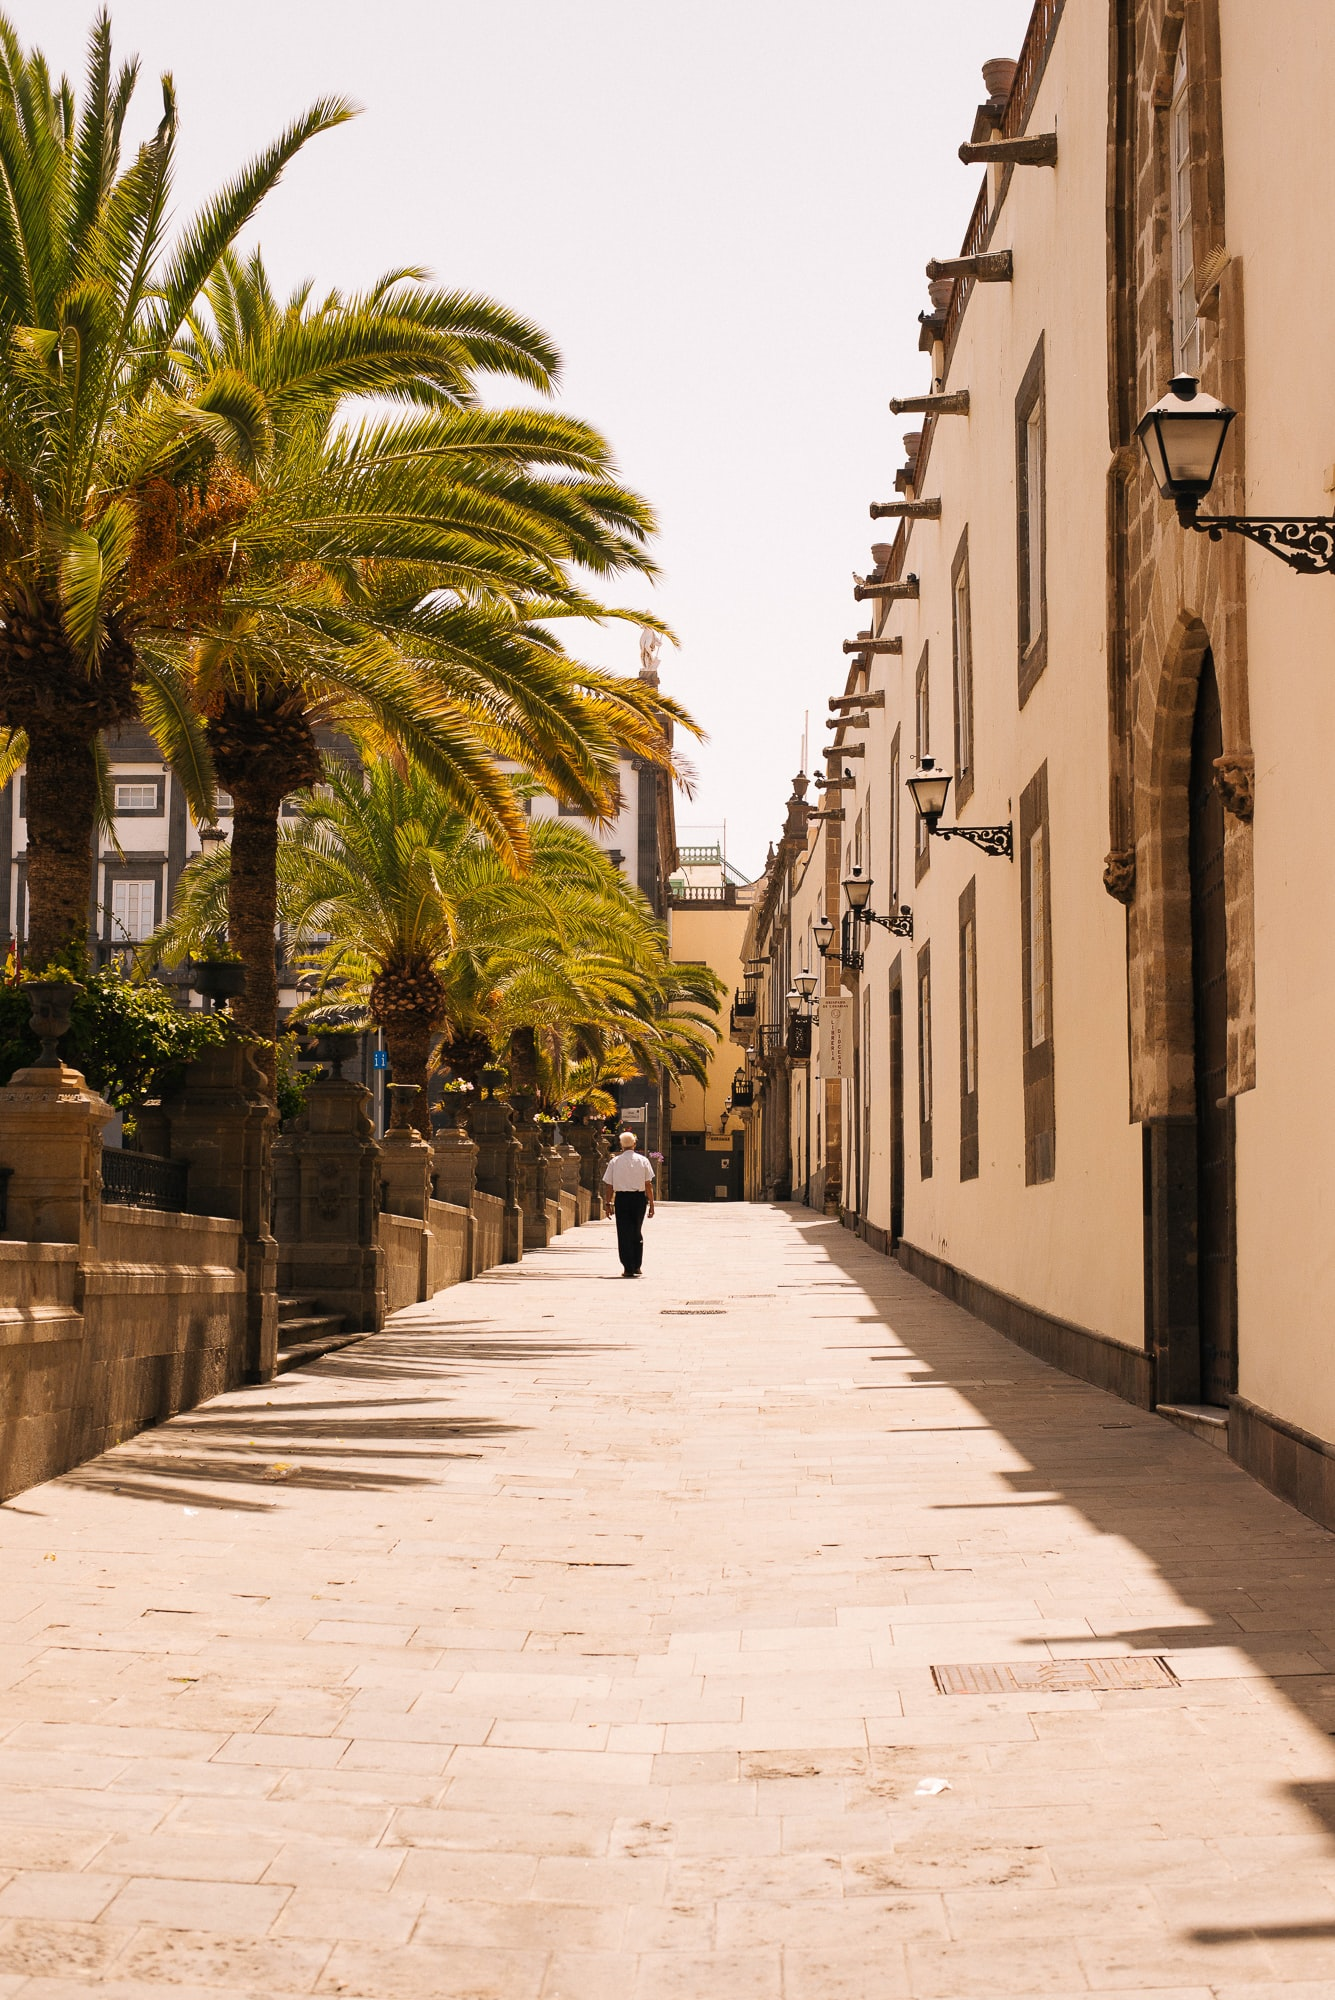 A brick street in the Canary Islands lined with palm trees and beautiful building architecture